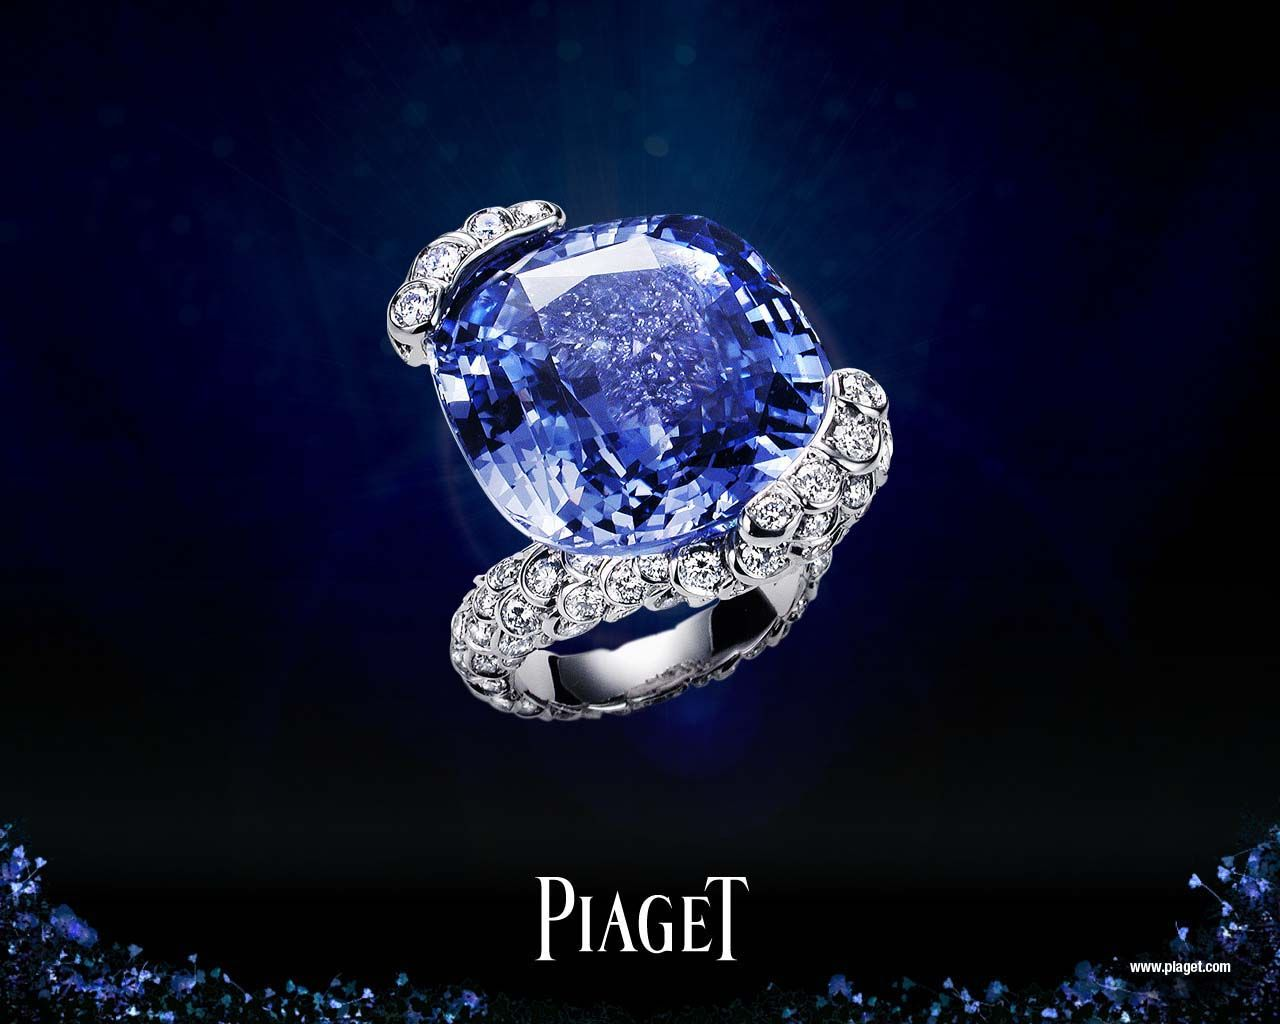 Luxury watches wallpaper - Luxury Jewelry Piaget Luxury Watches Jewelry Advertising Wallpapers